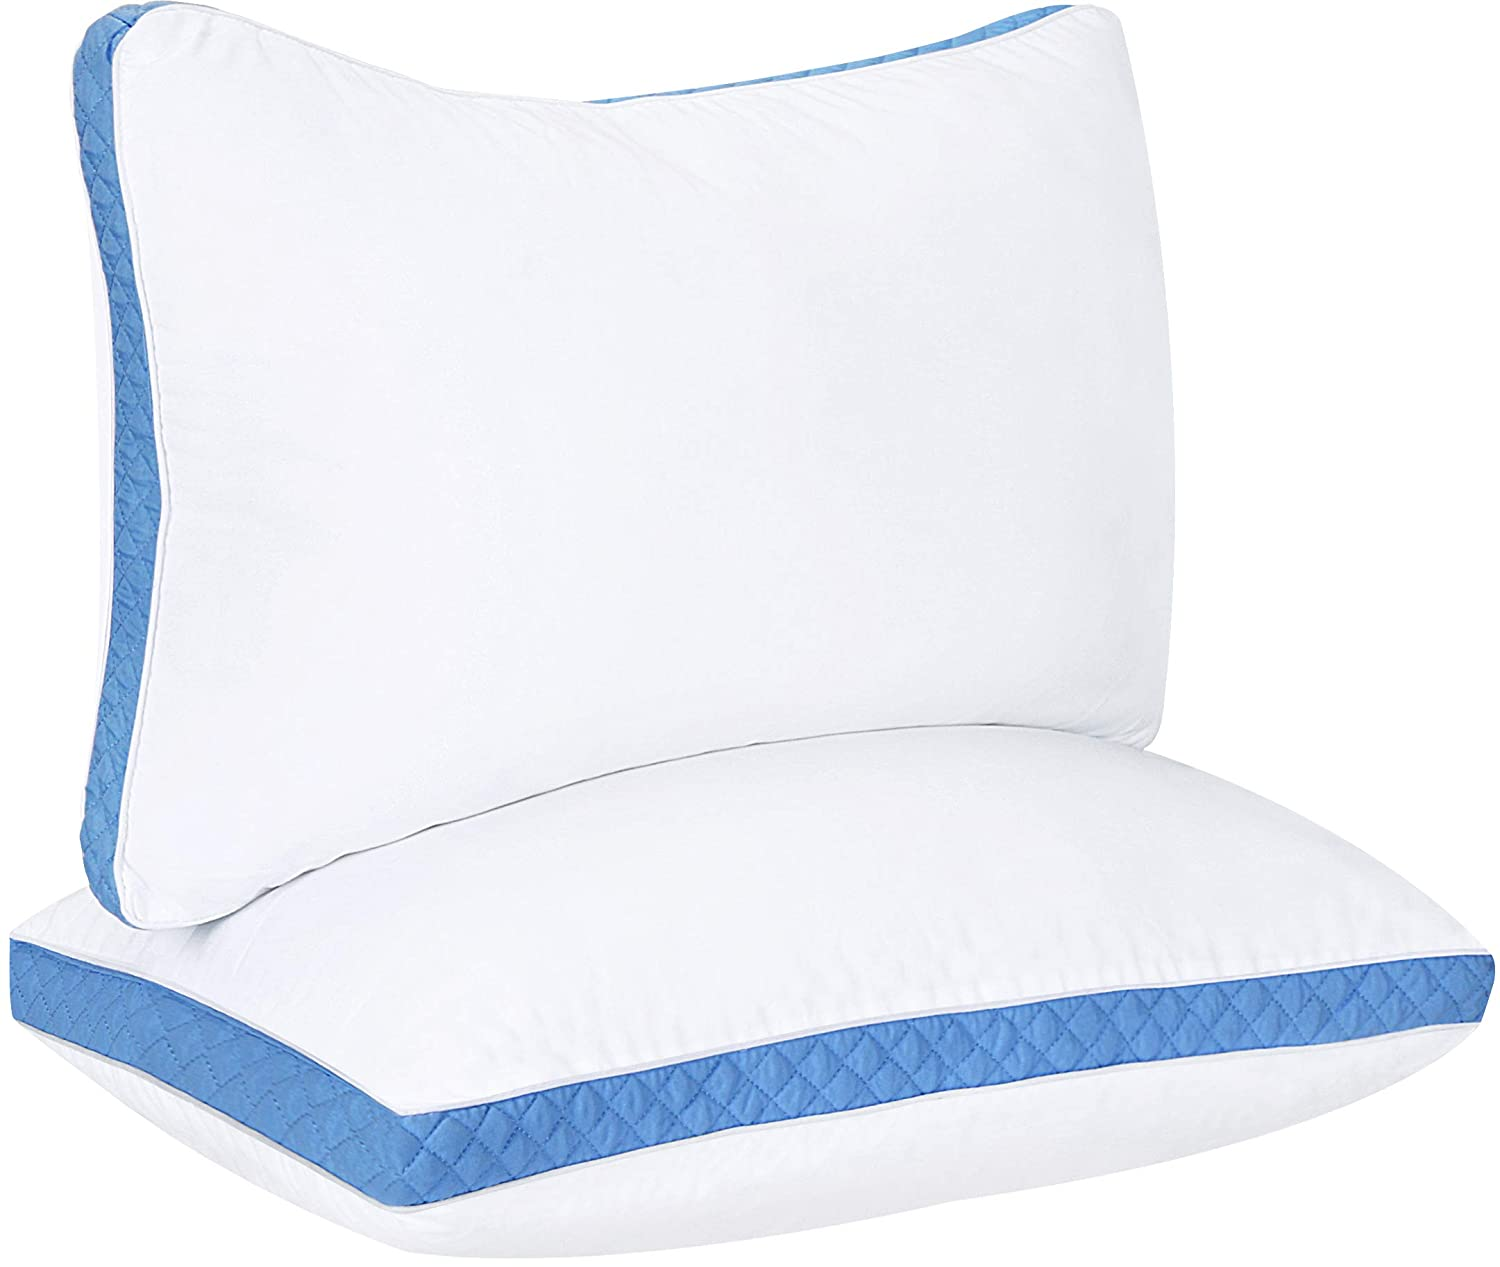 Utopia Bedding Gusseted Quilted Pillow (2-Pack) Premium Quality Bed Pillows - Side Back Sleepers - Blue Gusset - King - 18 x 36 Inches